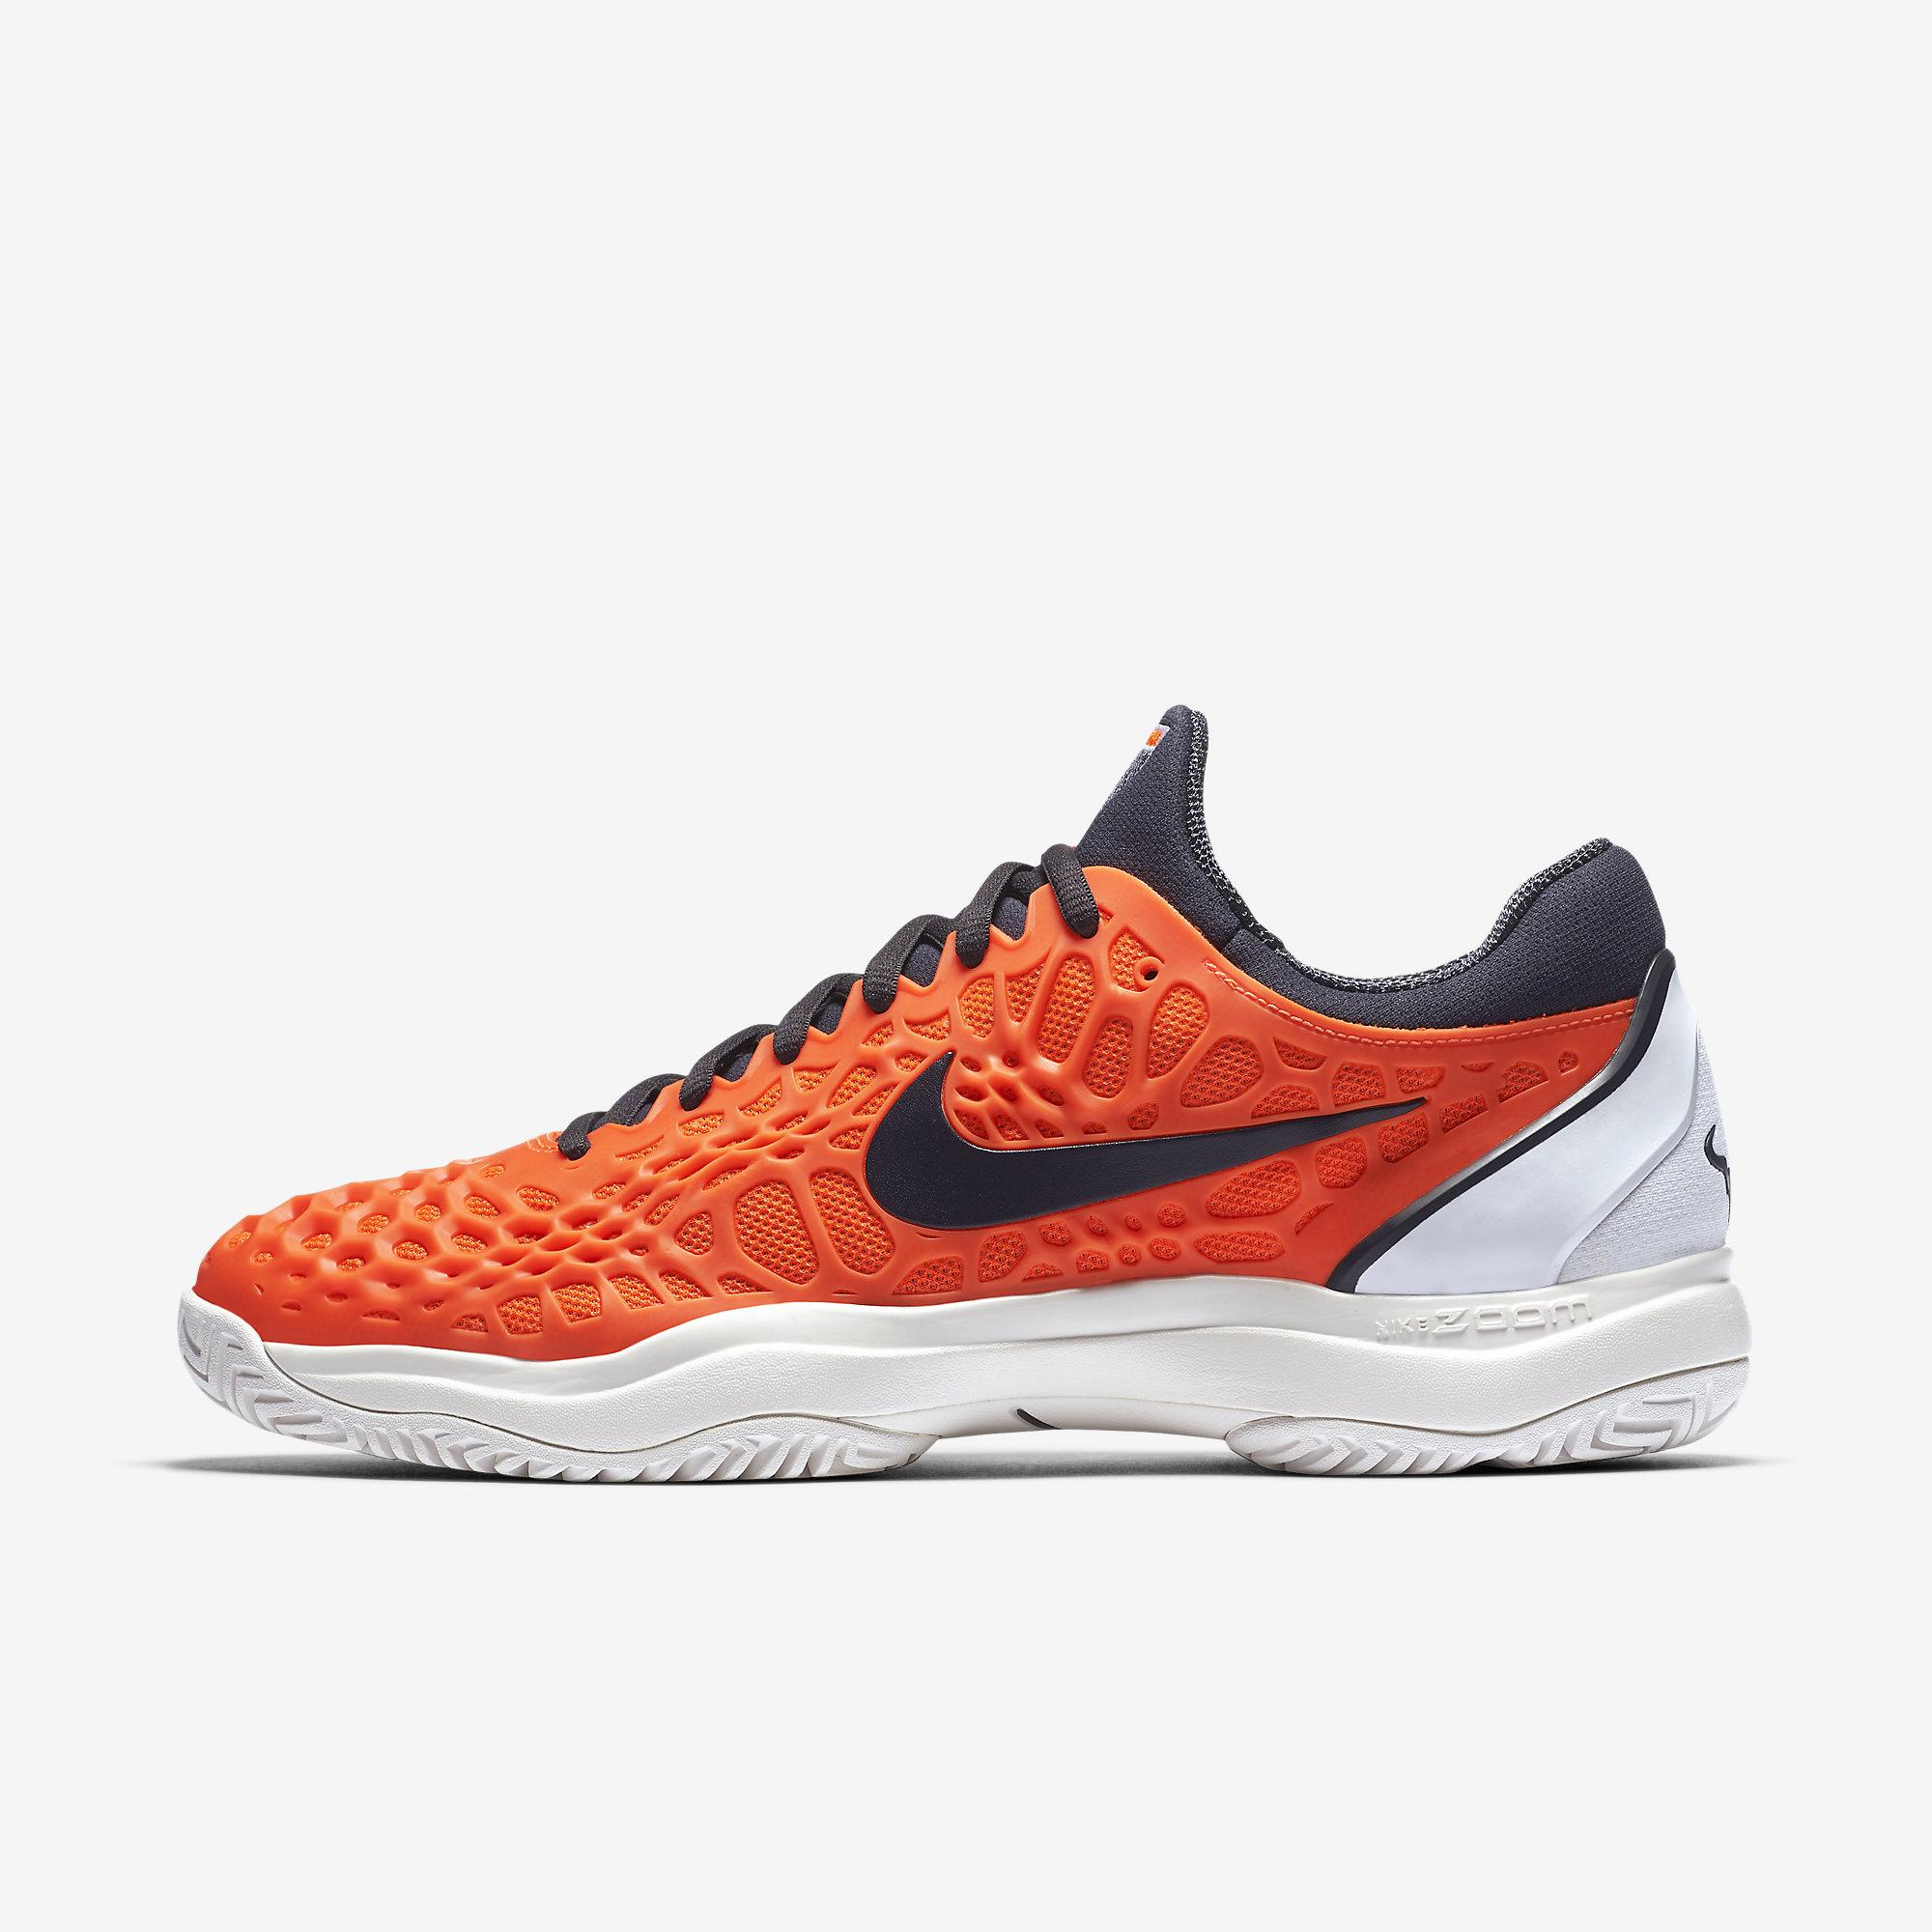 81d2d764ea7f Nike Mens Zoom Cage 3 Rafa Tennis Shoes - Hyper Crimson White -  Tennisnuts.com